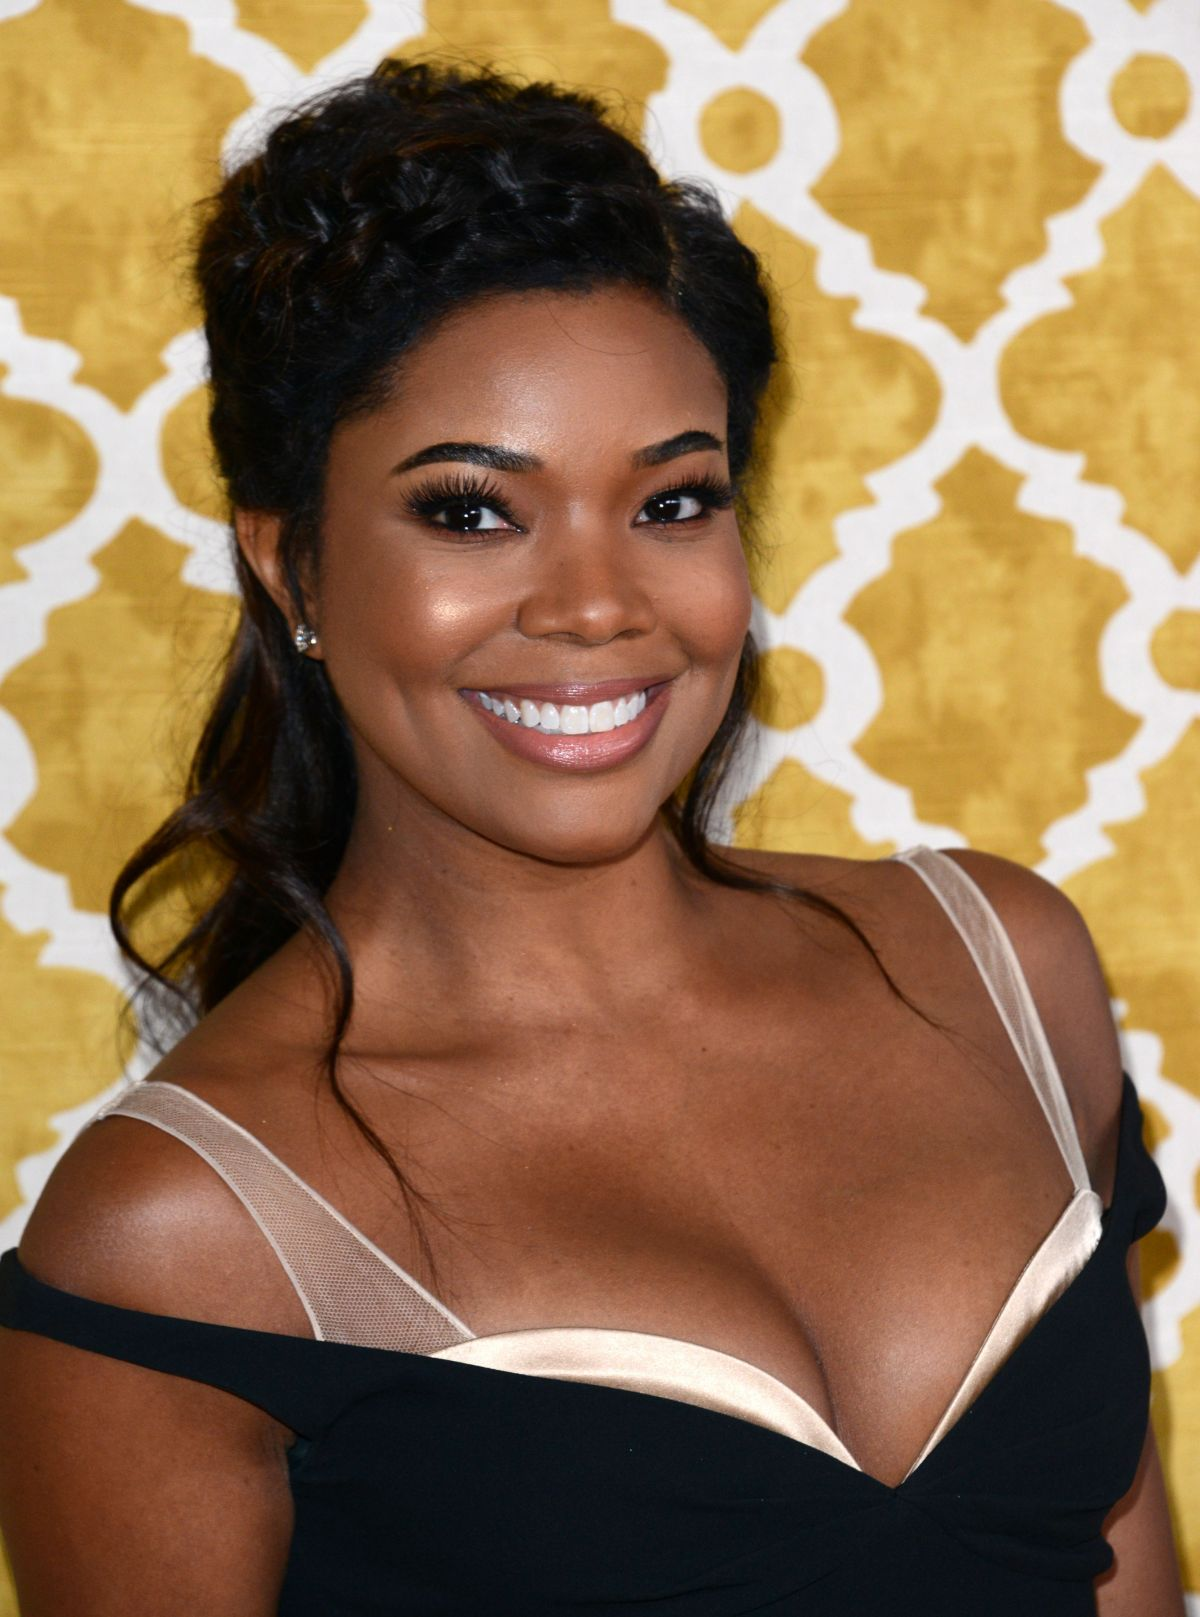 gabrielle-union-at-confirmation-premiere-at-paramount-studios-in-la_2